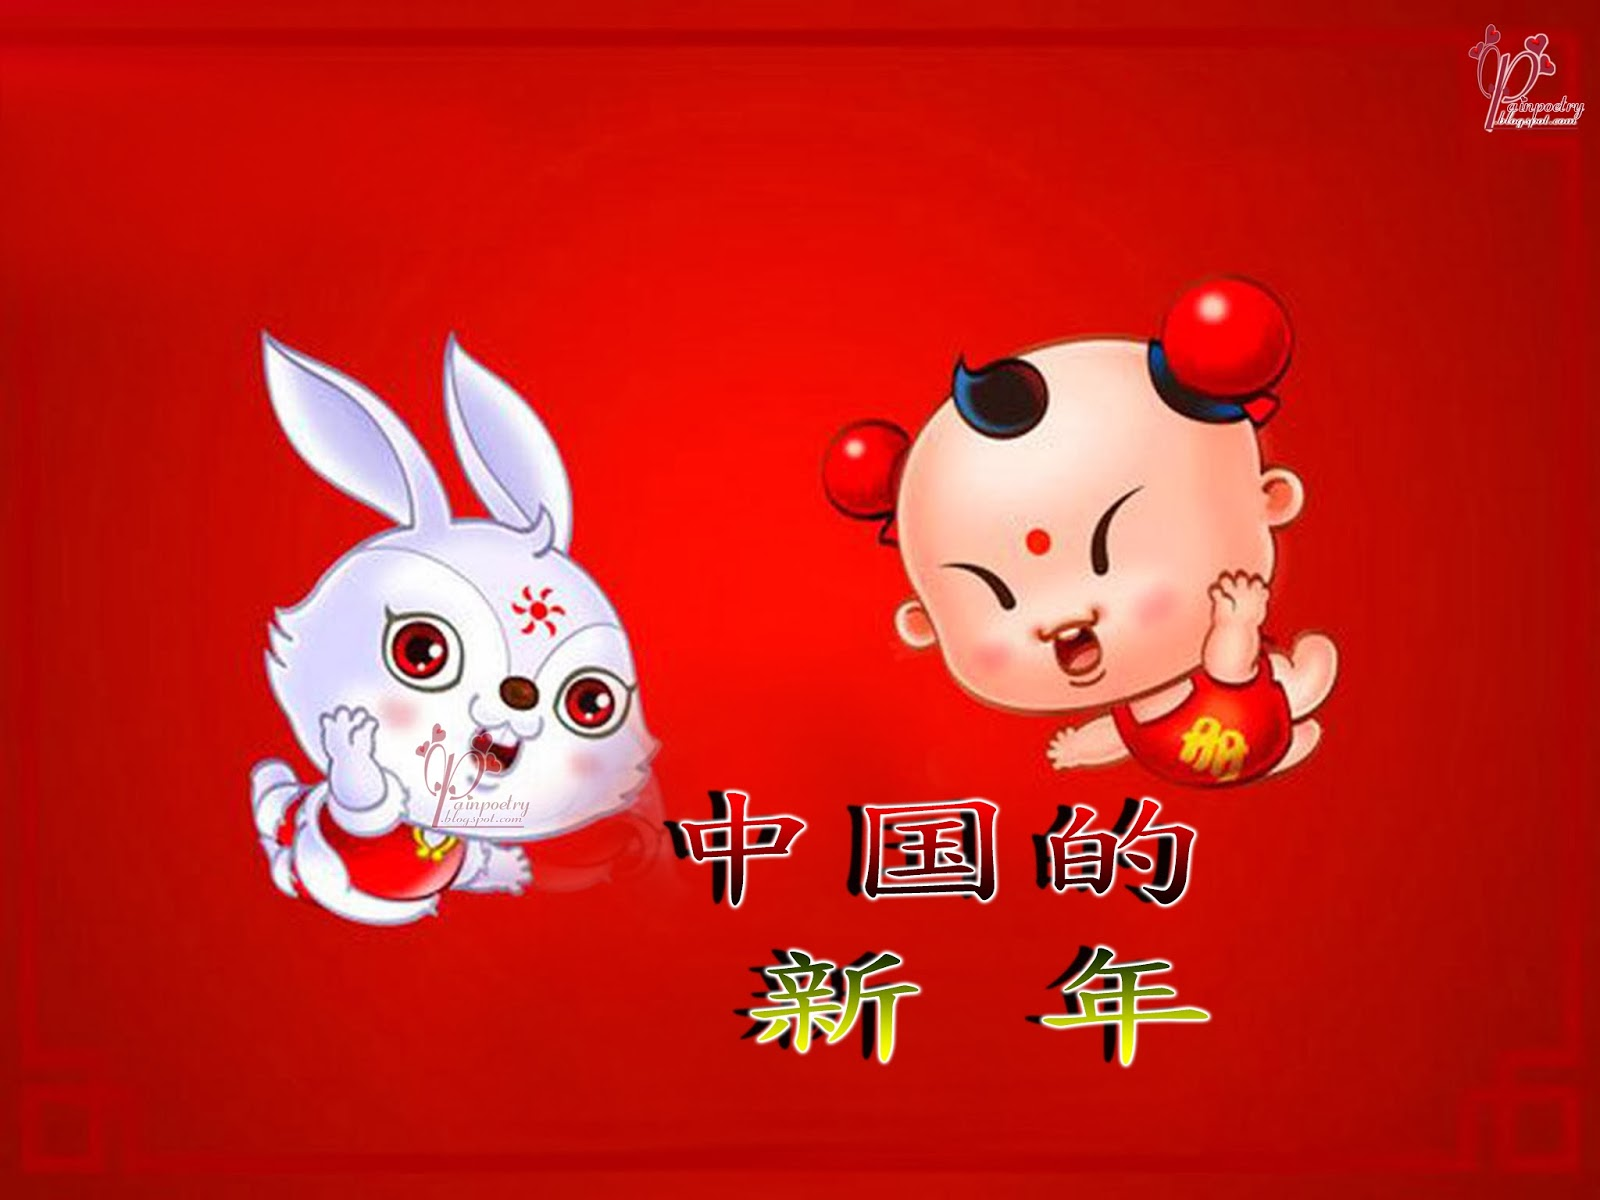 Chinese-New-Year-Wishes-Walpaper-Image-HD